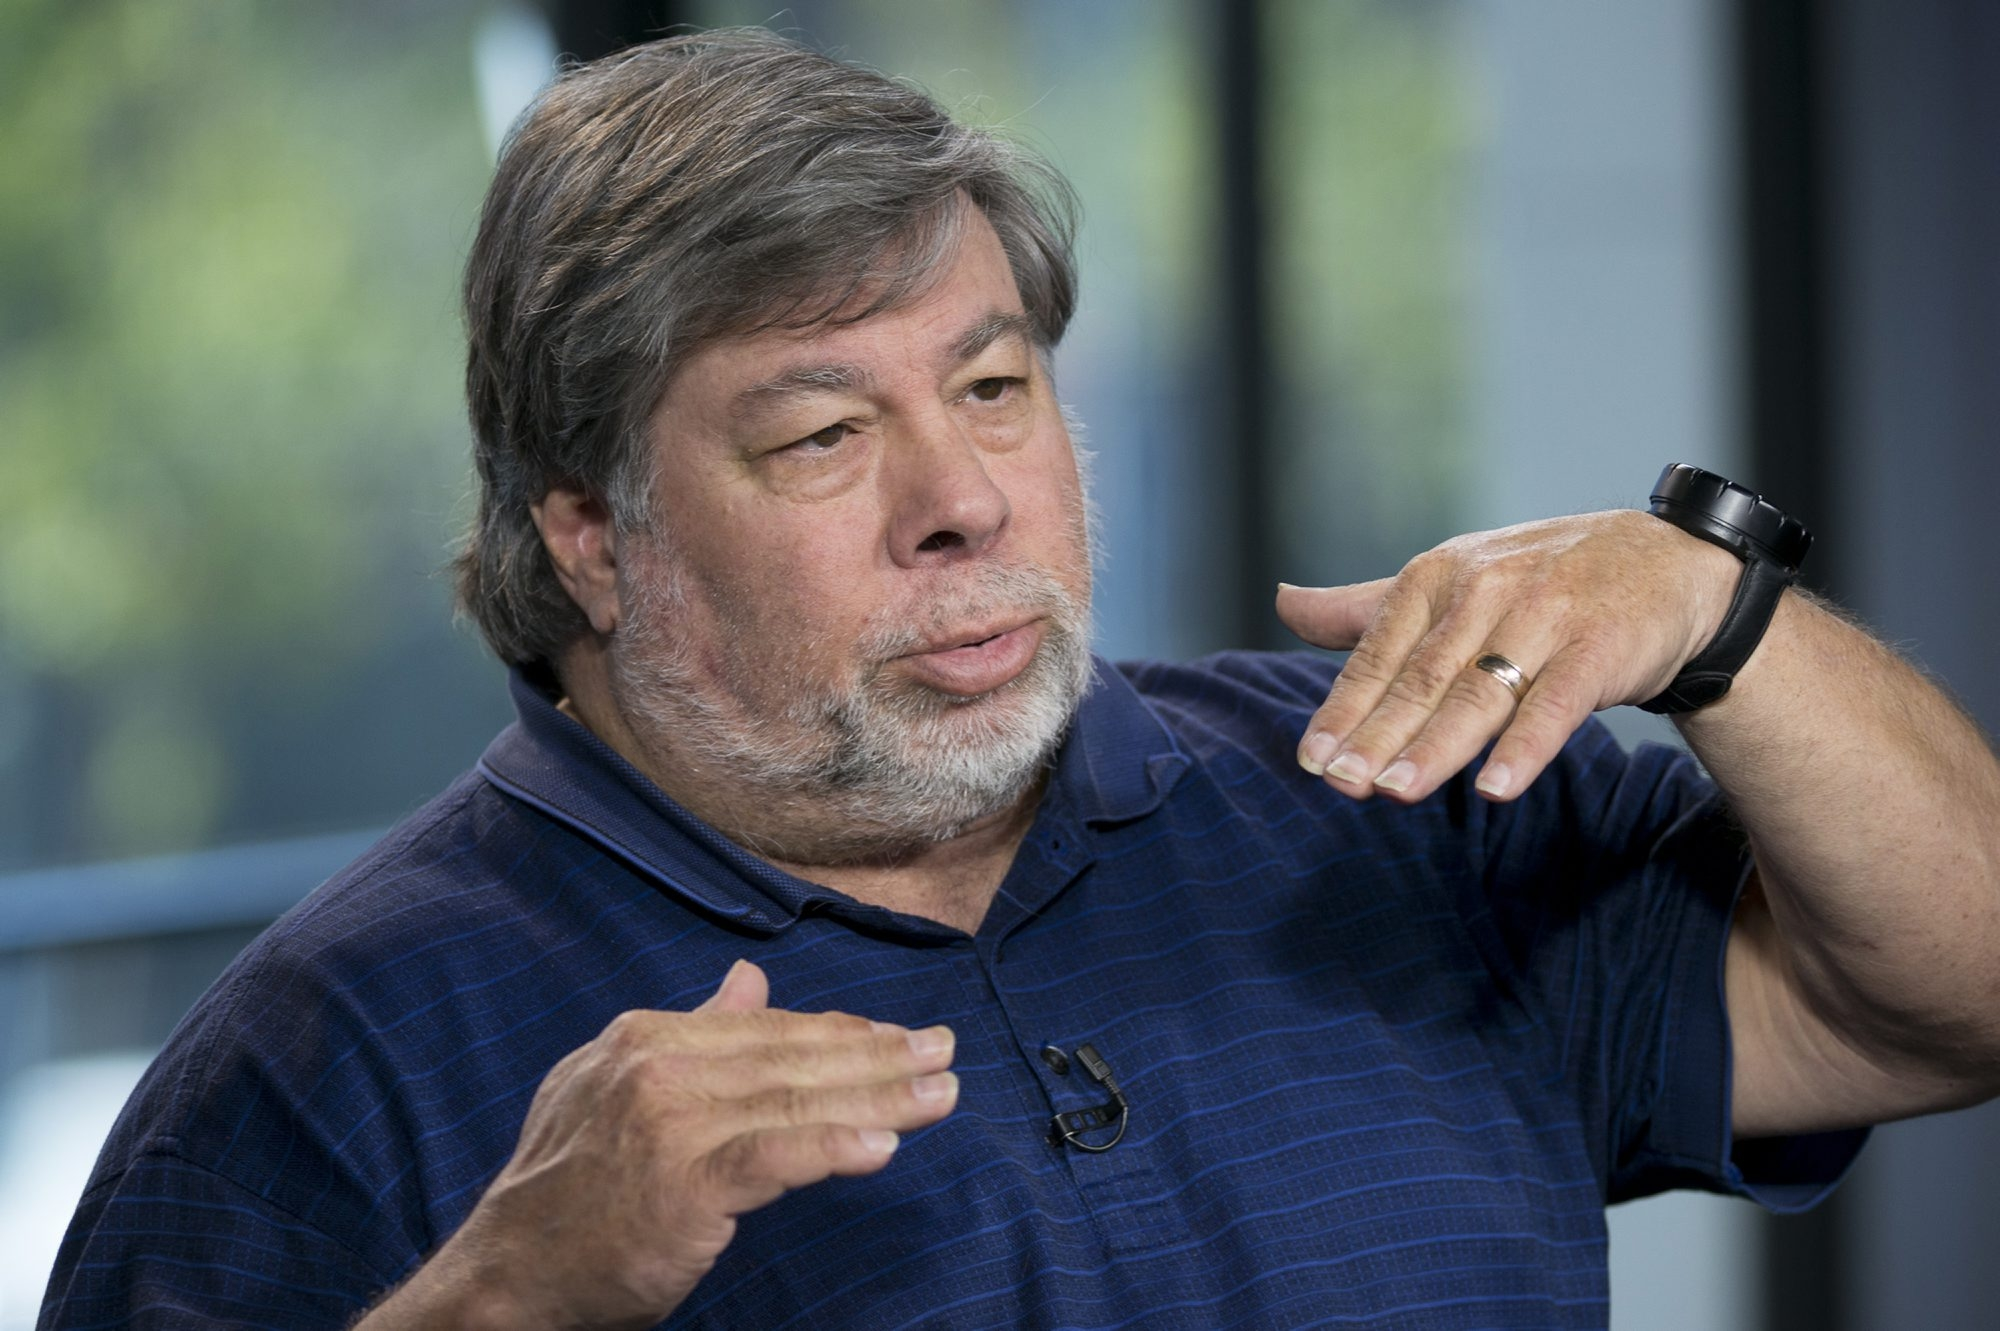 Steve Wozniak, who co-founded Apple Computers with Steve Jobs, will speak at UB on Wednesday.